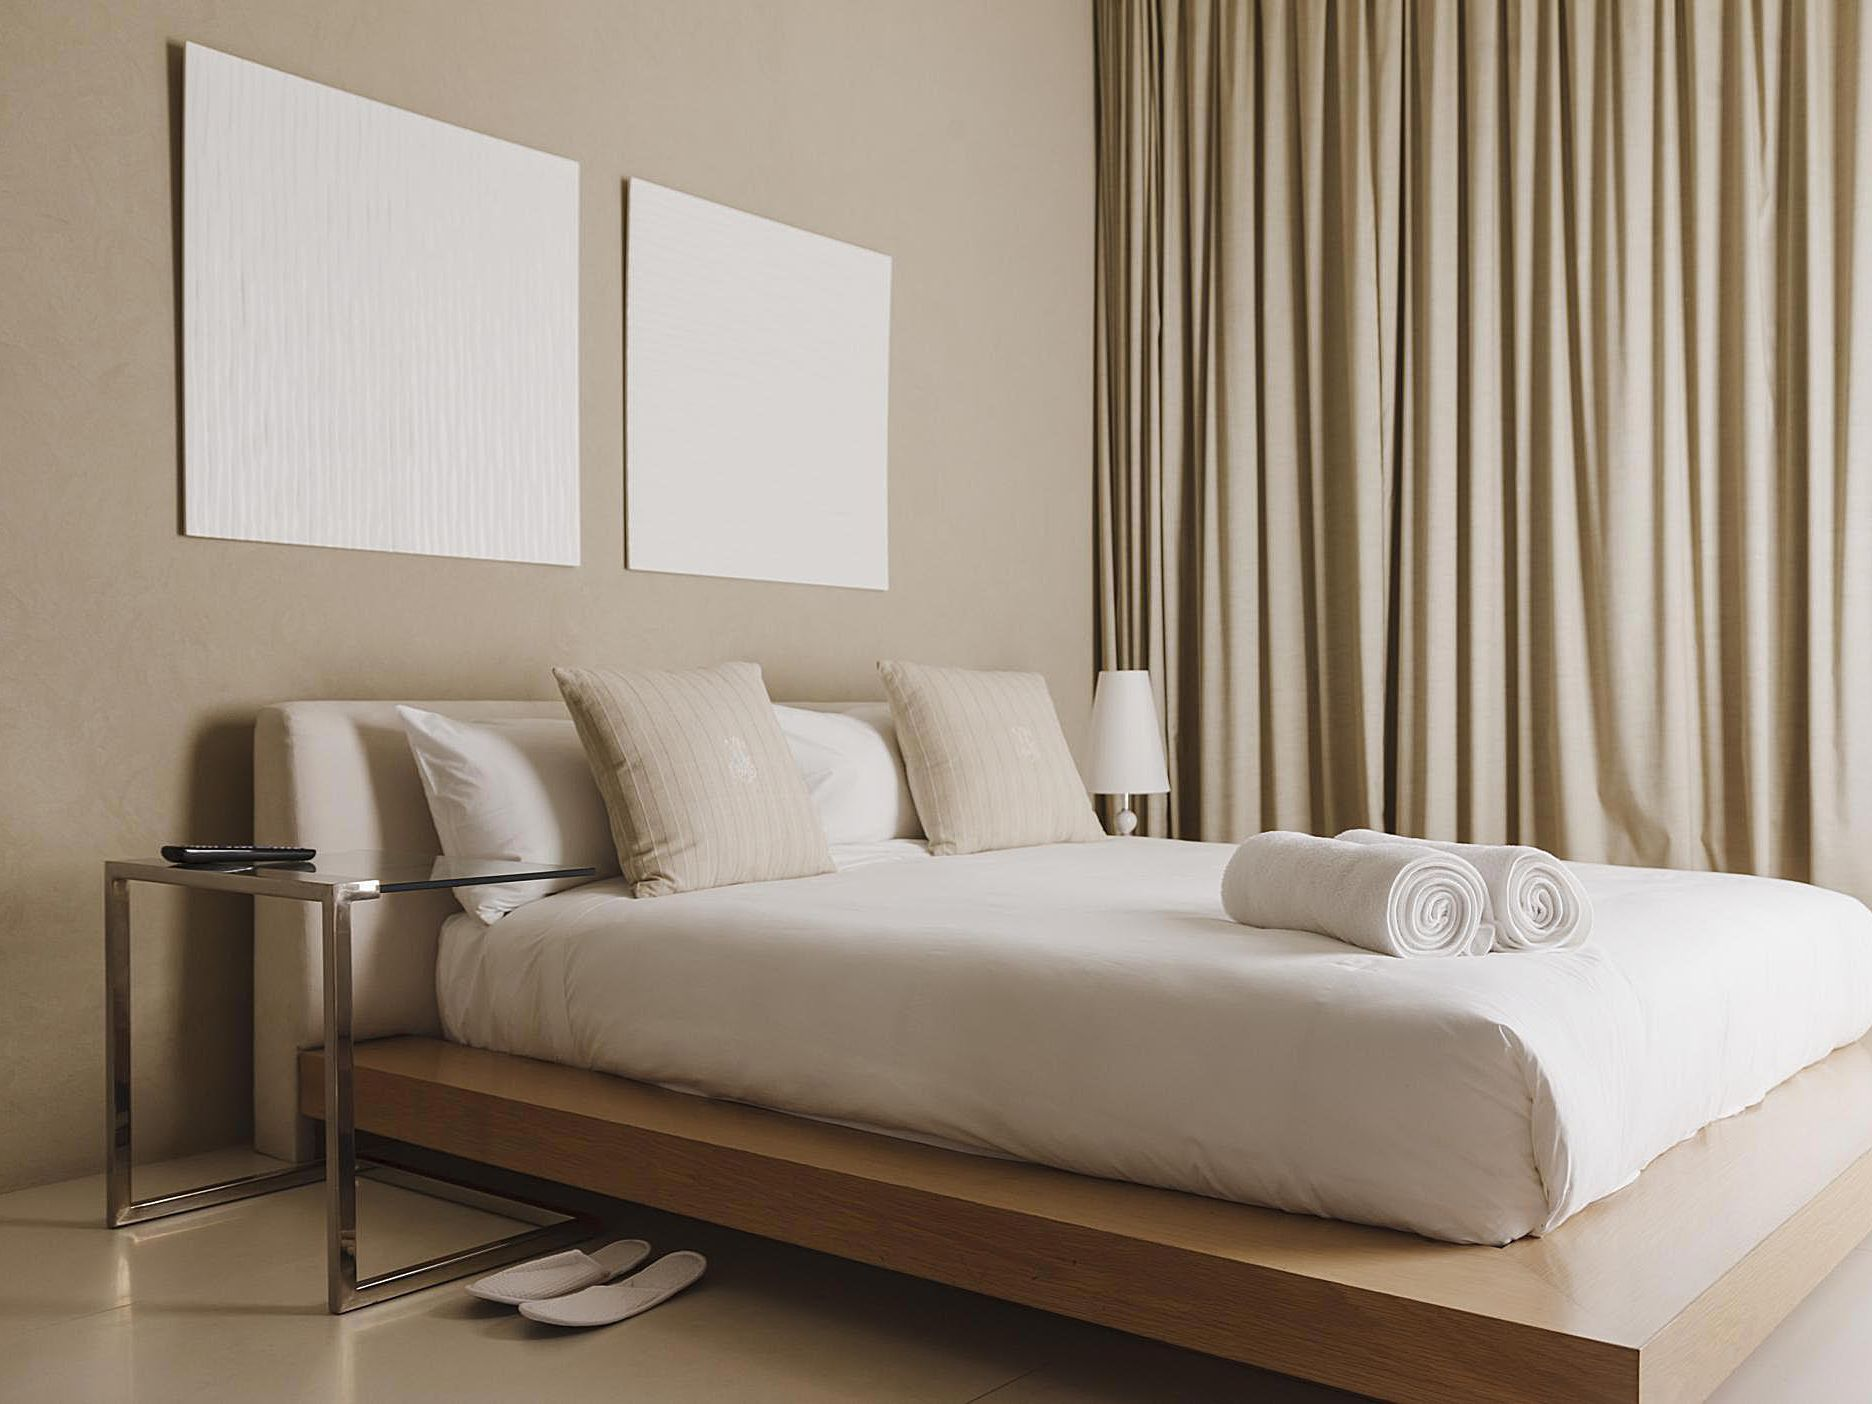 How To Design A Bedroom For Better Sleep